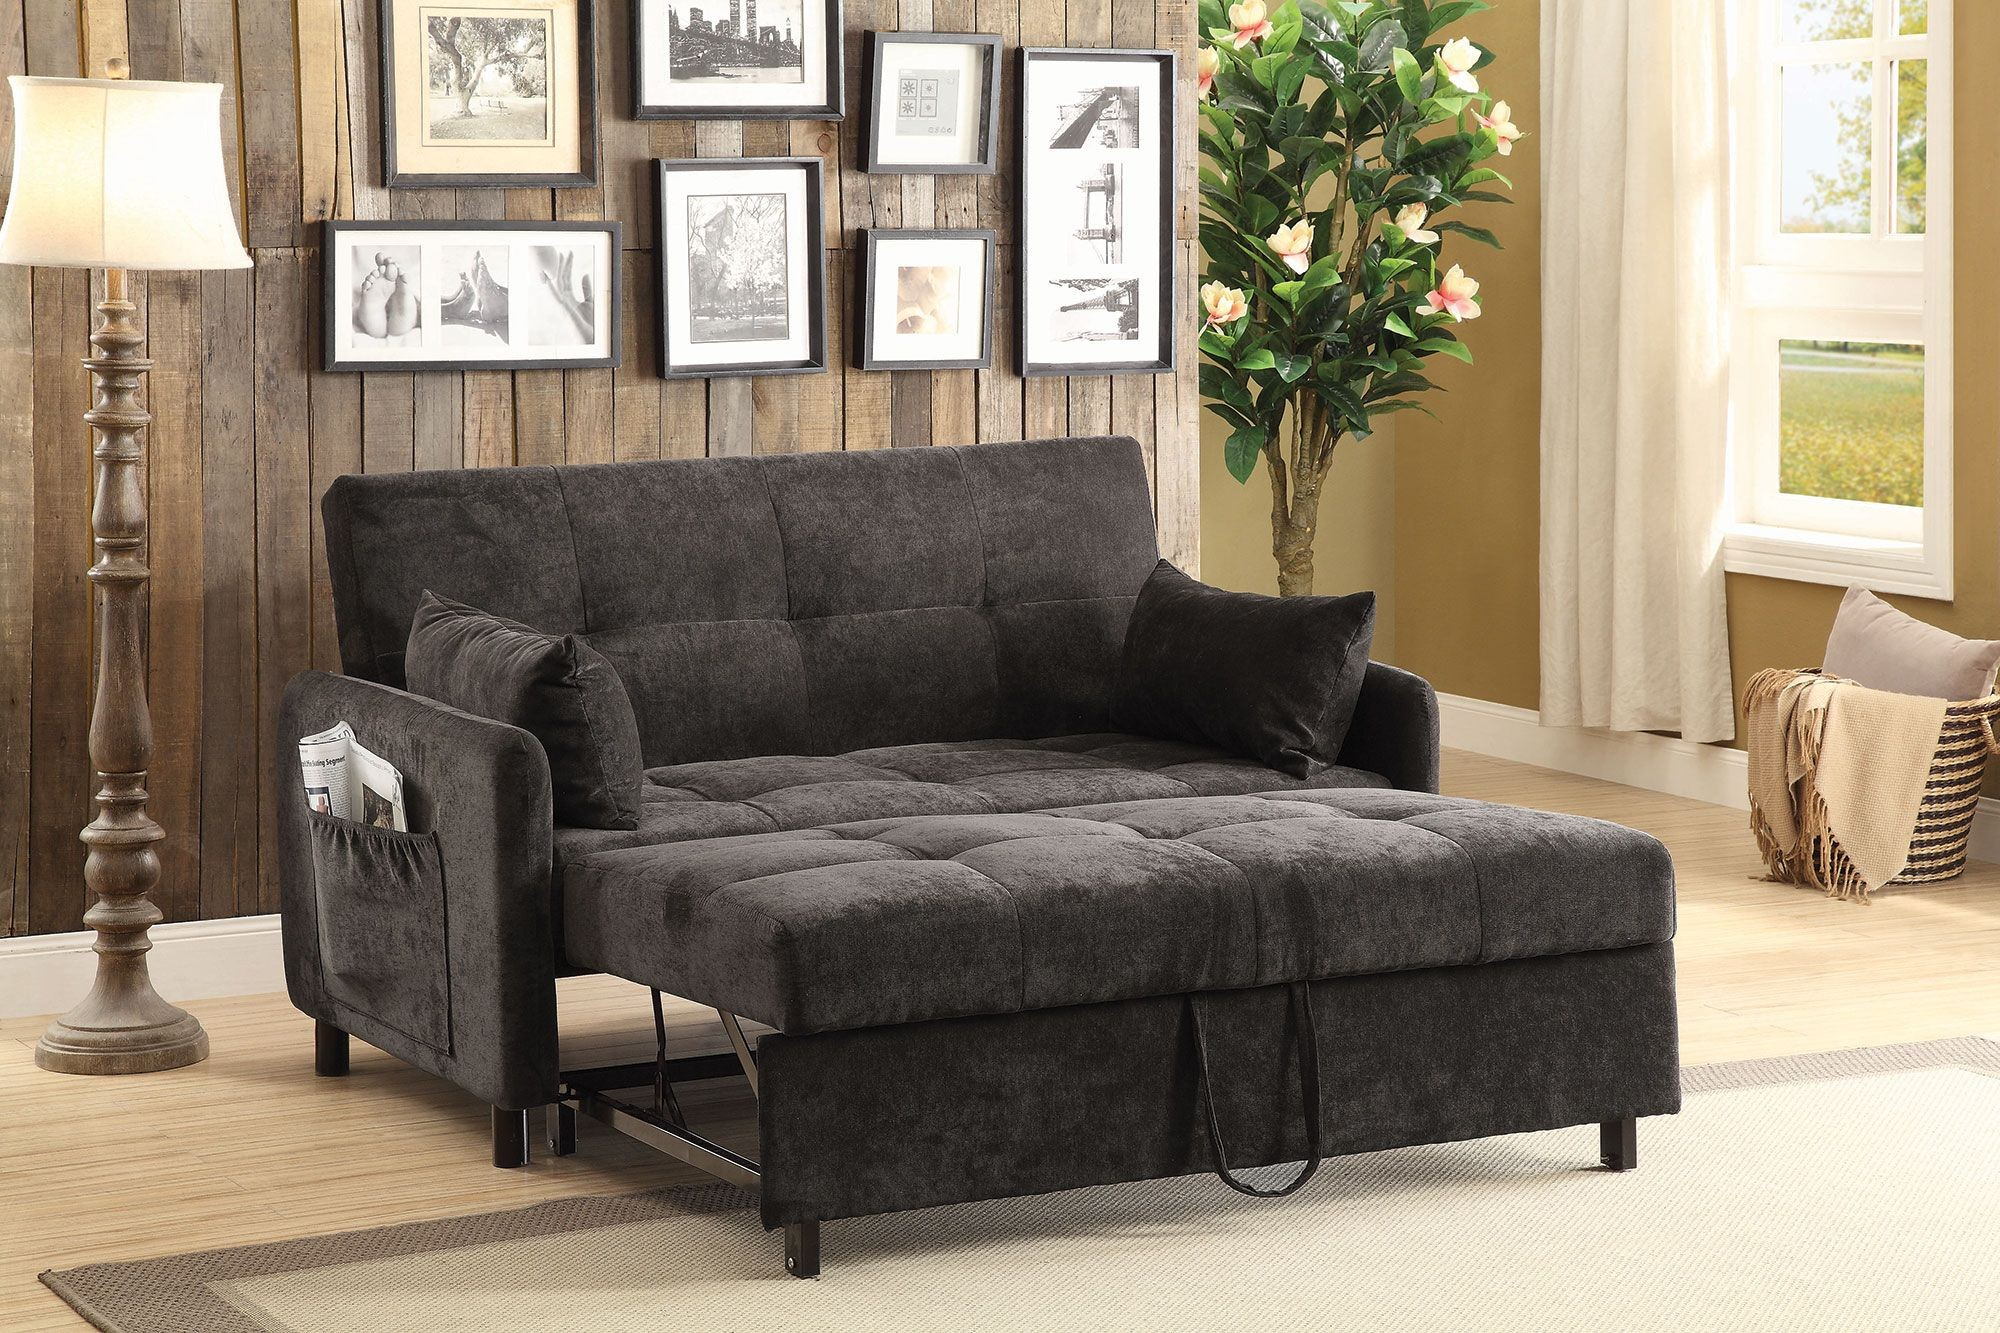 Dark Brown Sofa Bed From Coaster   Coleman Furniture Throughout Brown Sofa Chairs (View 11 of 15)